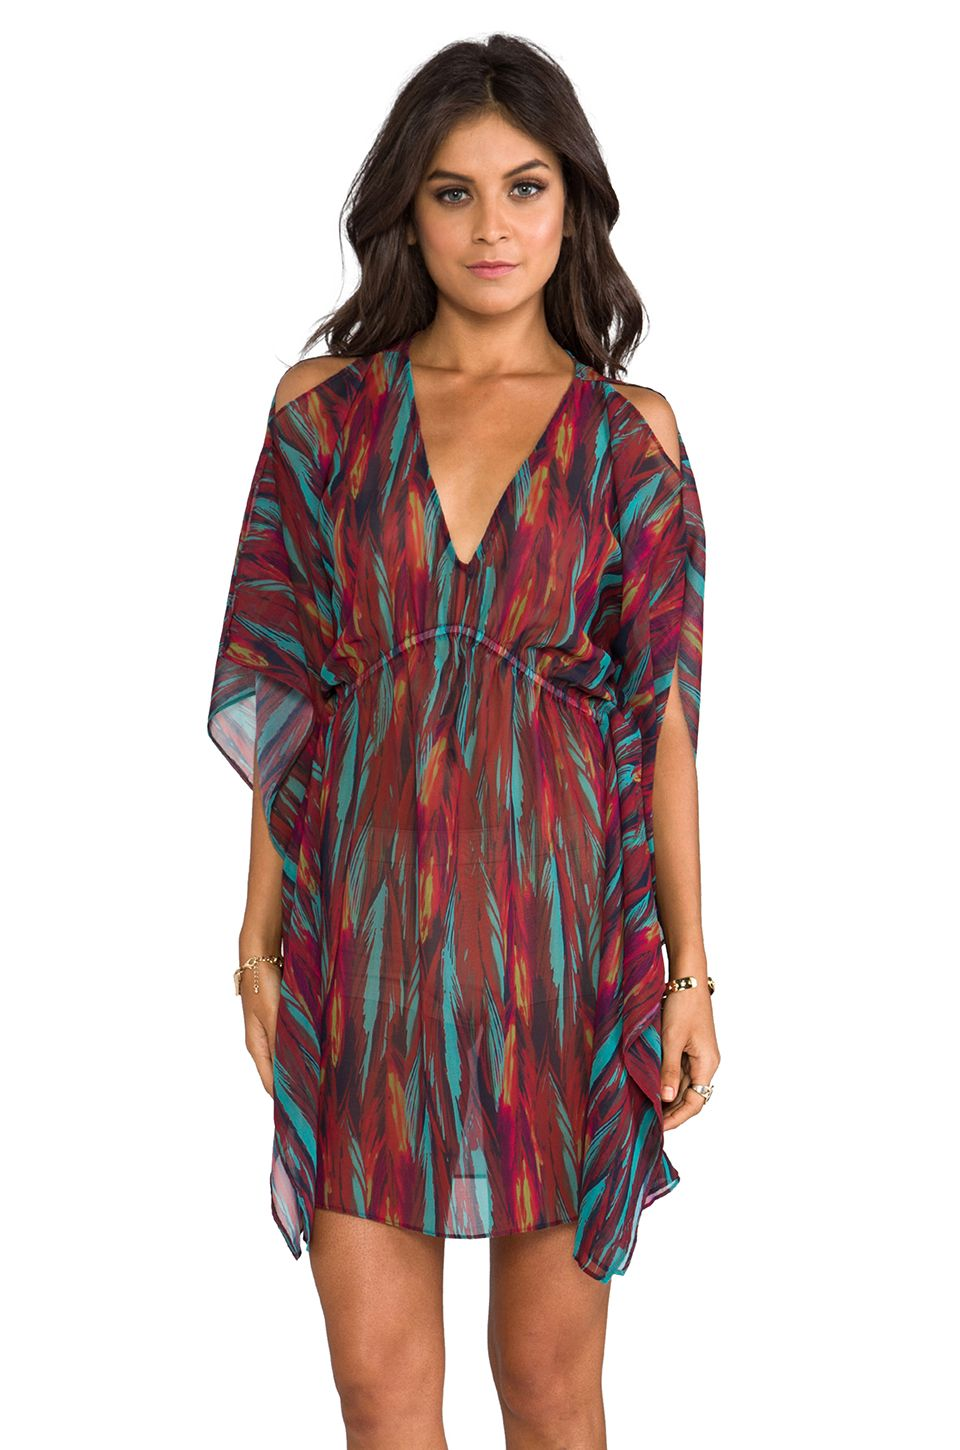 0d7734bd8d Vix Swimwear Lais Caftan in Napo from REVOLVEclothing | Caftans ...